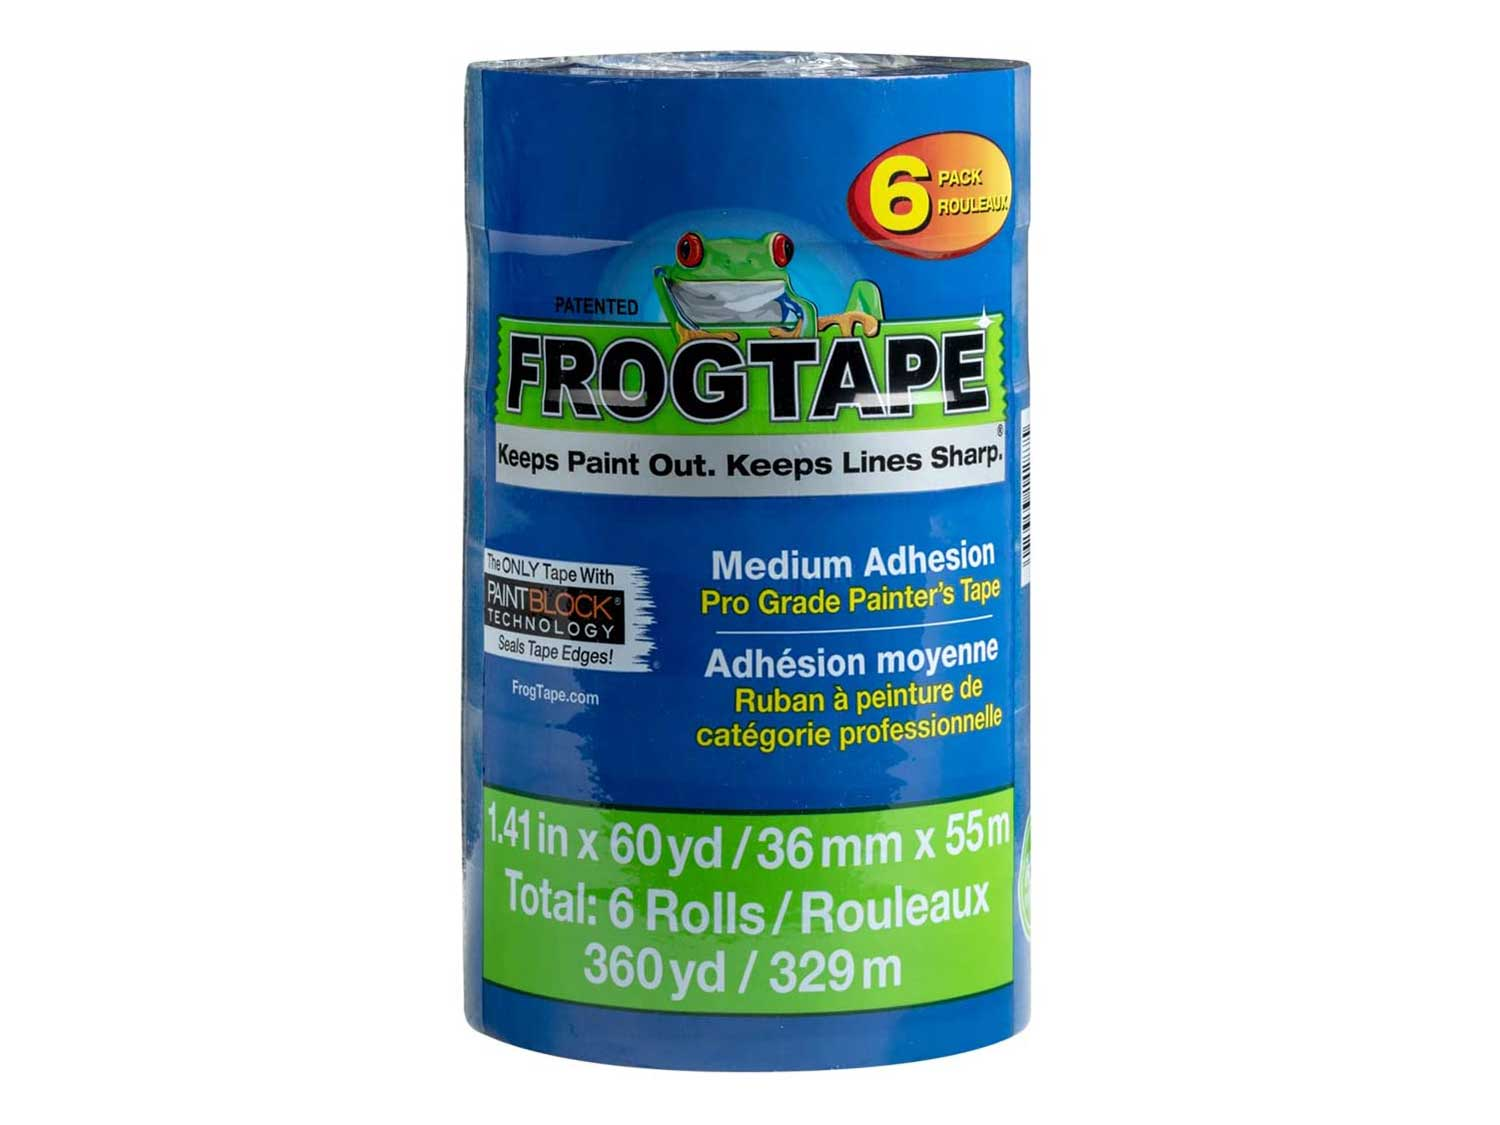 FROGTAPE 242750 Pro Painter's Tape with PAINTBLOCK, 1. 41-Inch x 60-Yards, Blue, 6 Rolls